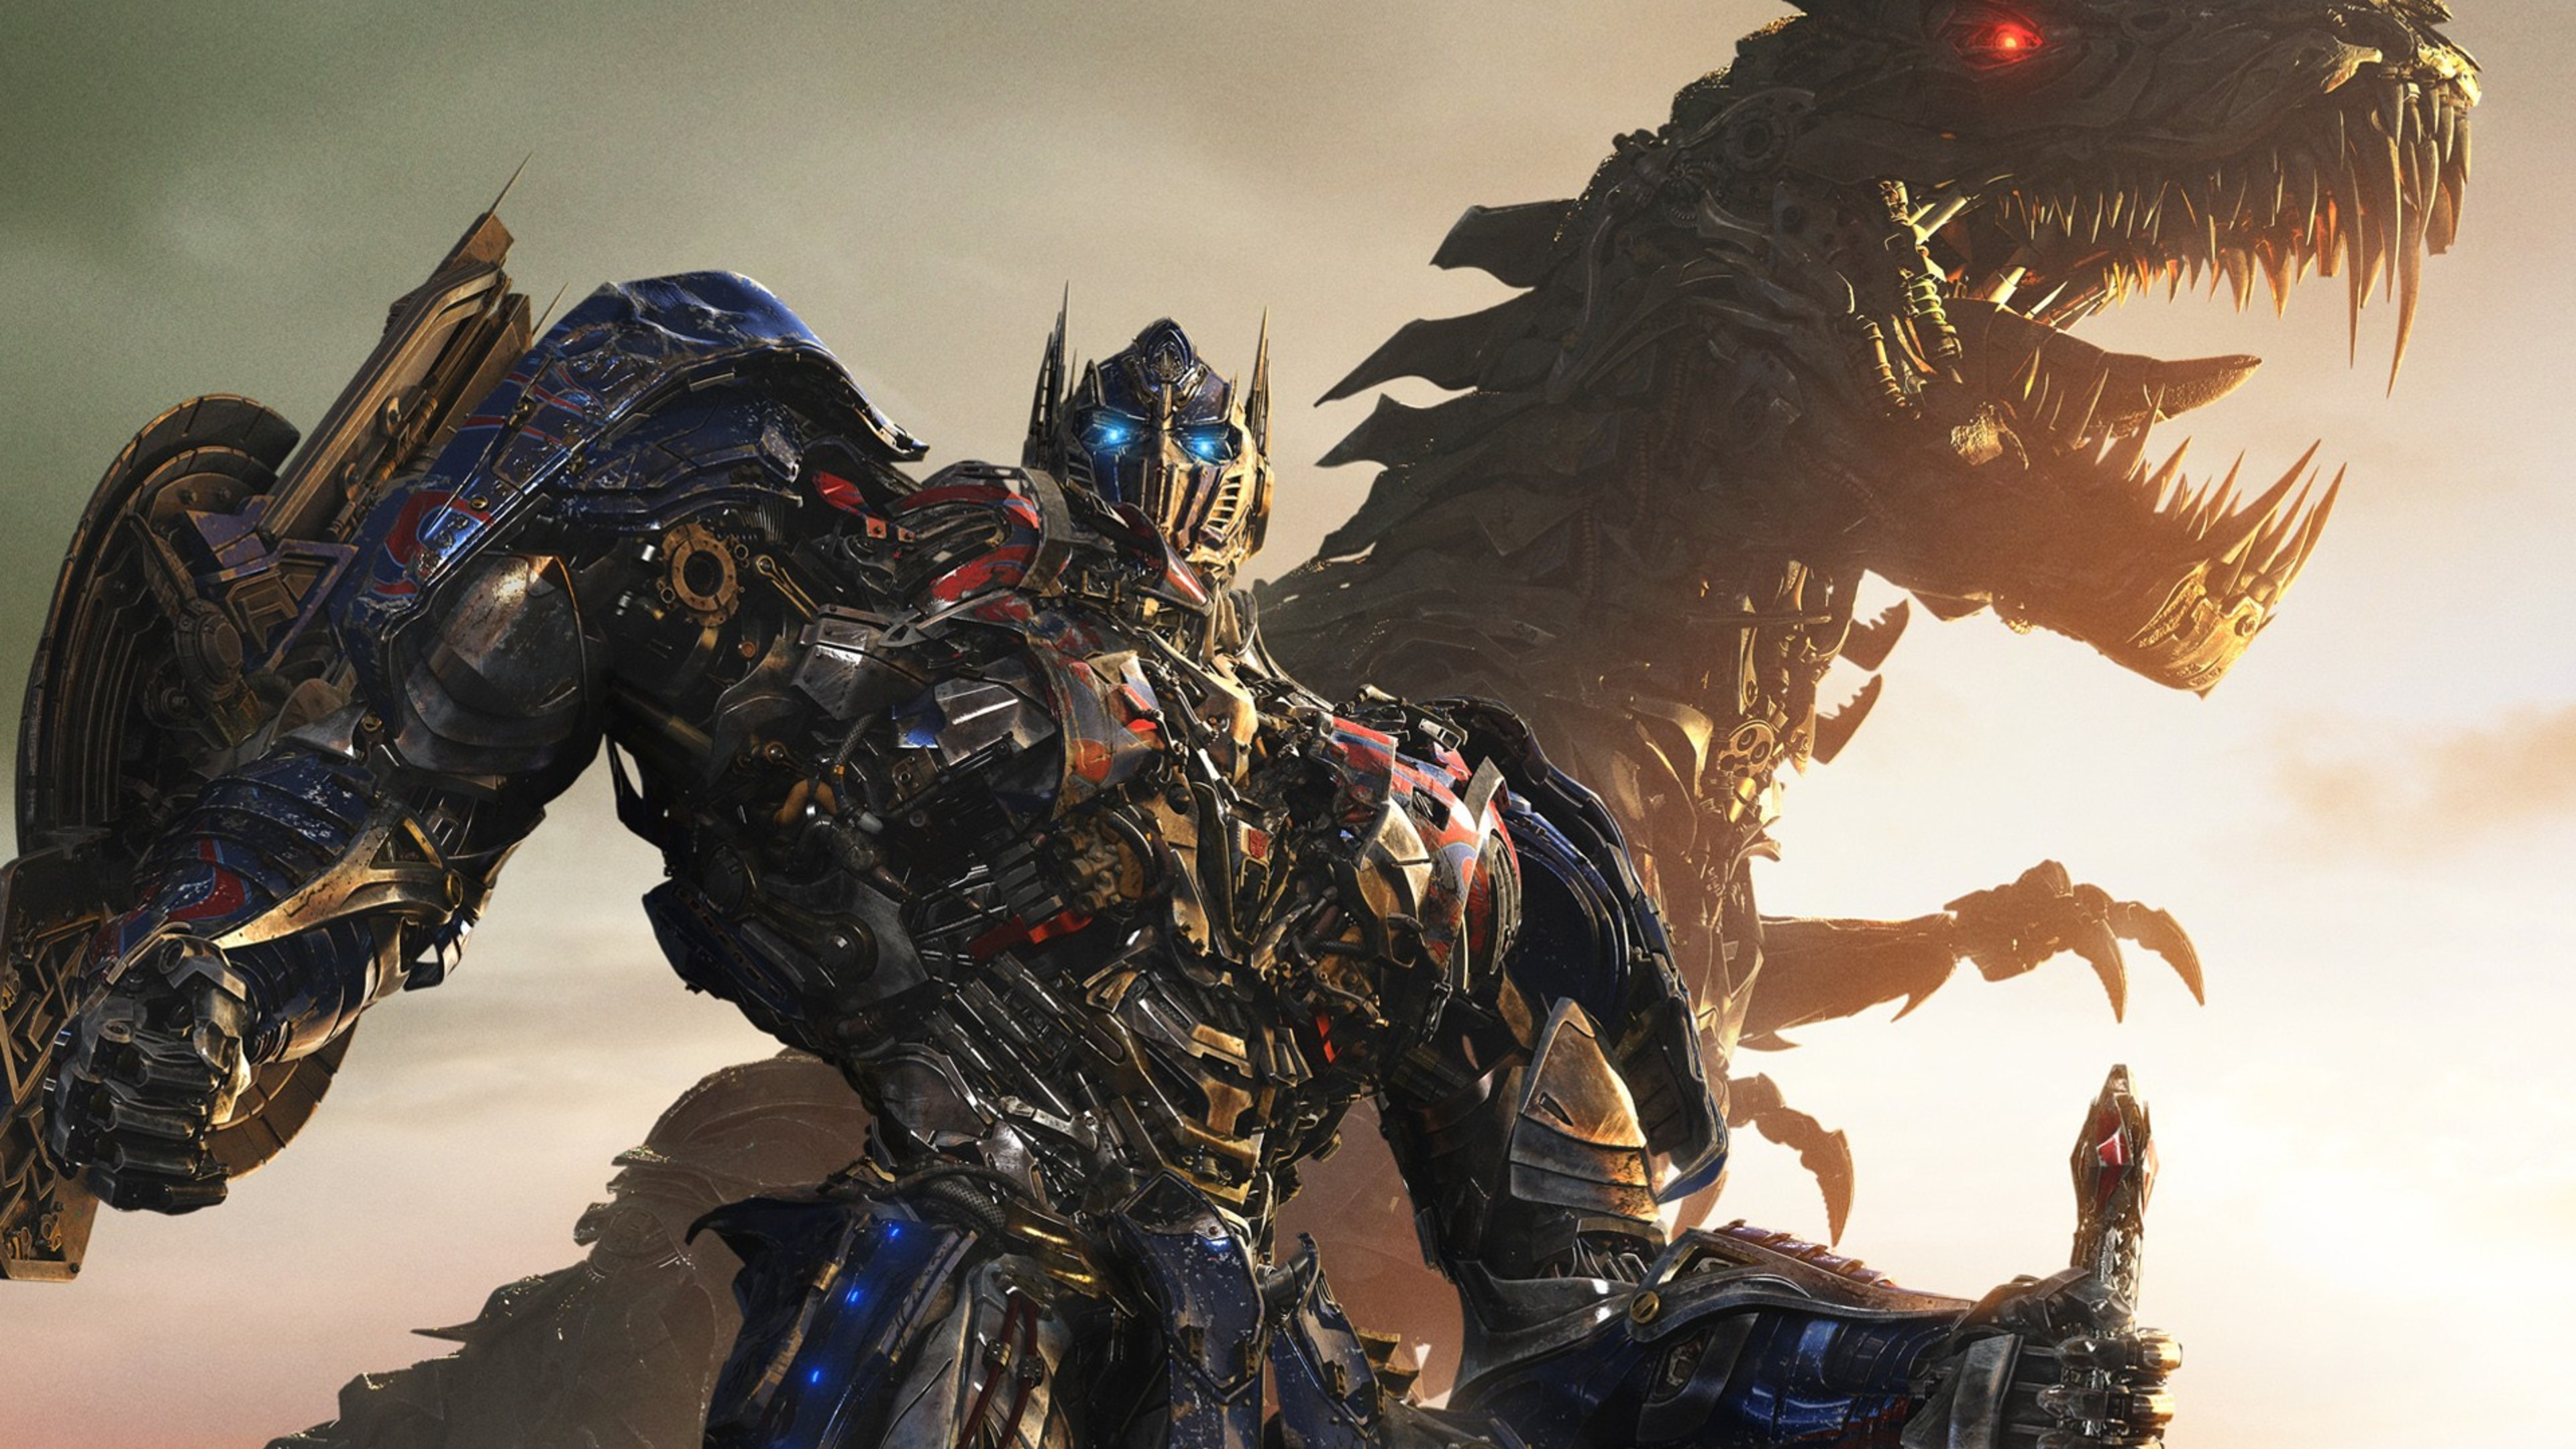 Transformers Age Of Extinction Full Movie In Hindi: Transformers 4 Age Of Extinction Movie Download 720p